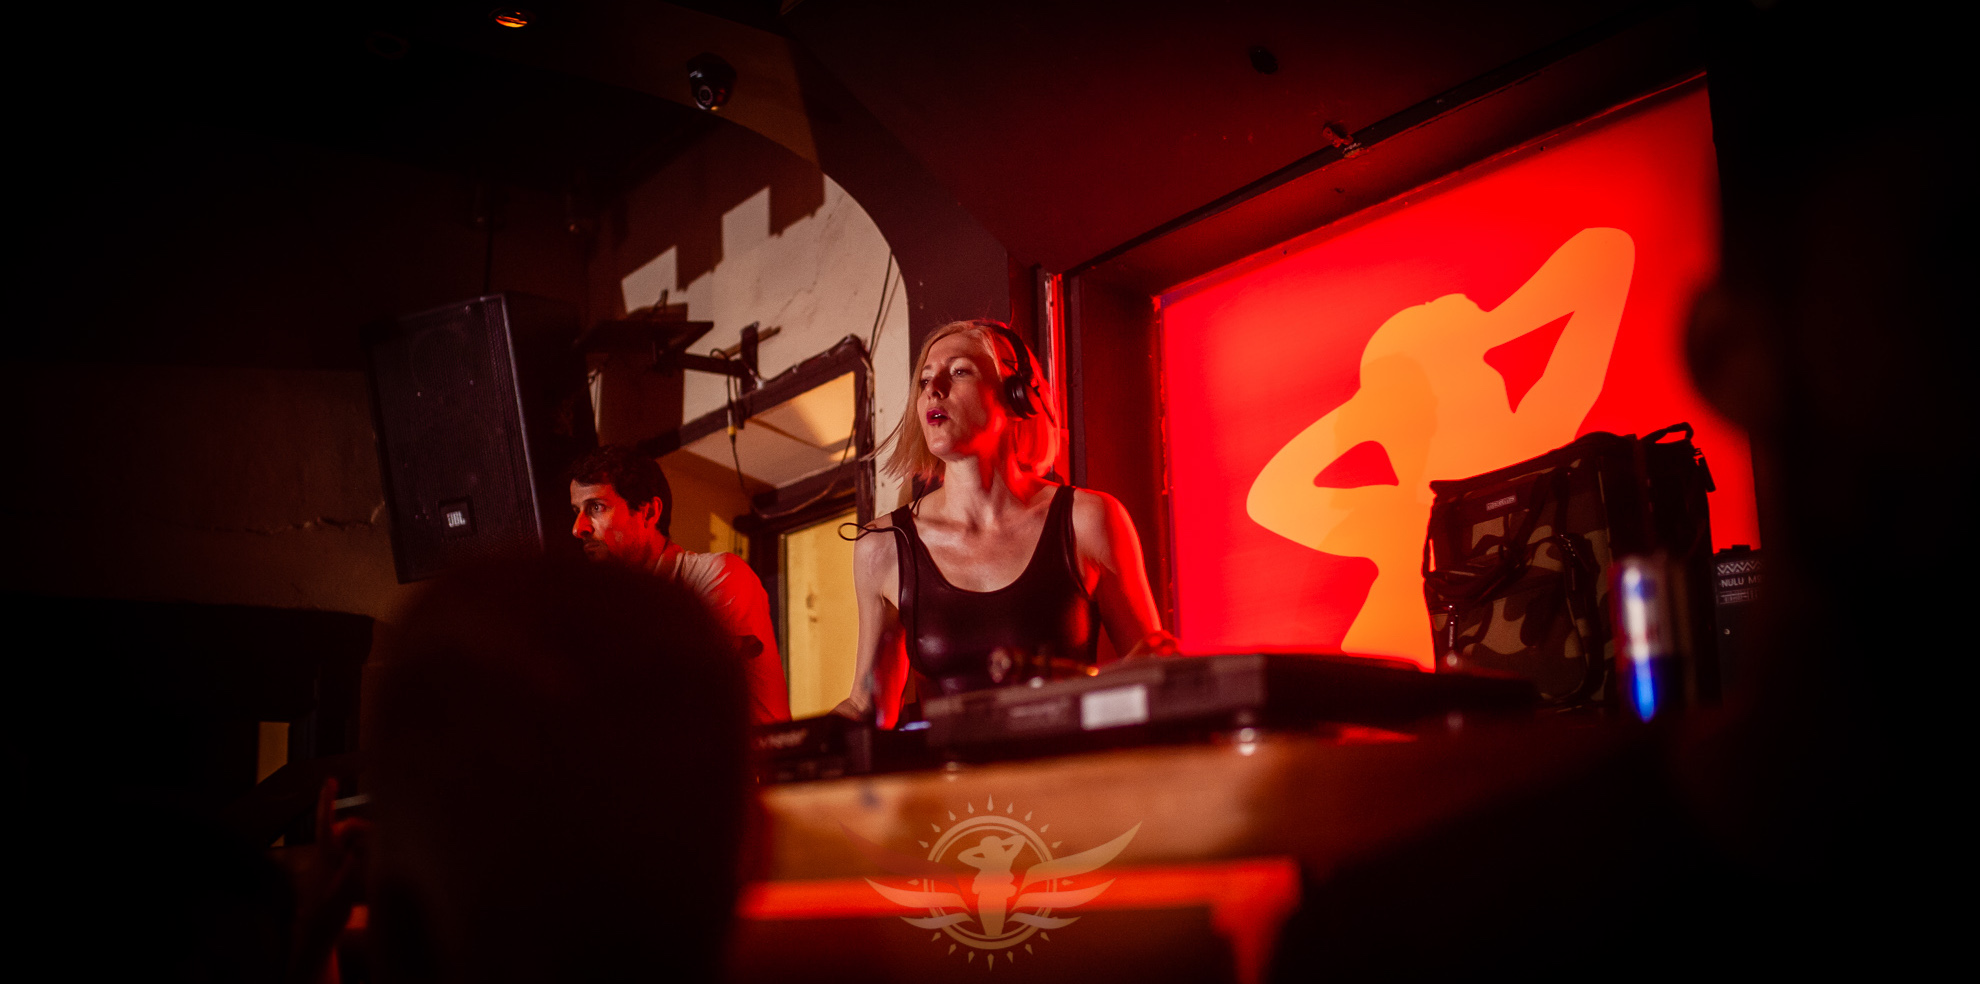 Ellen Allien - DJ Set @ Barrage Club Zakynthos, Greece